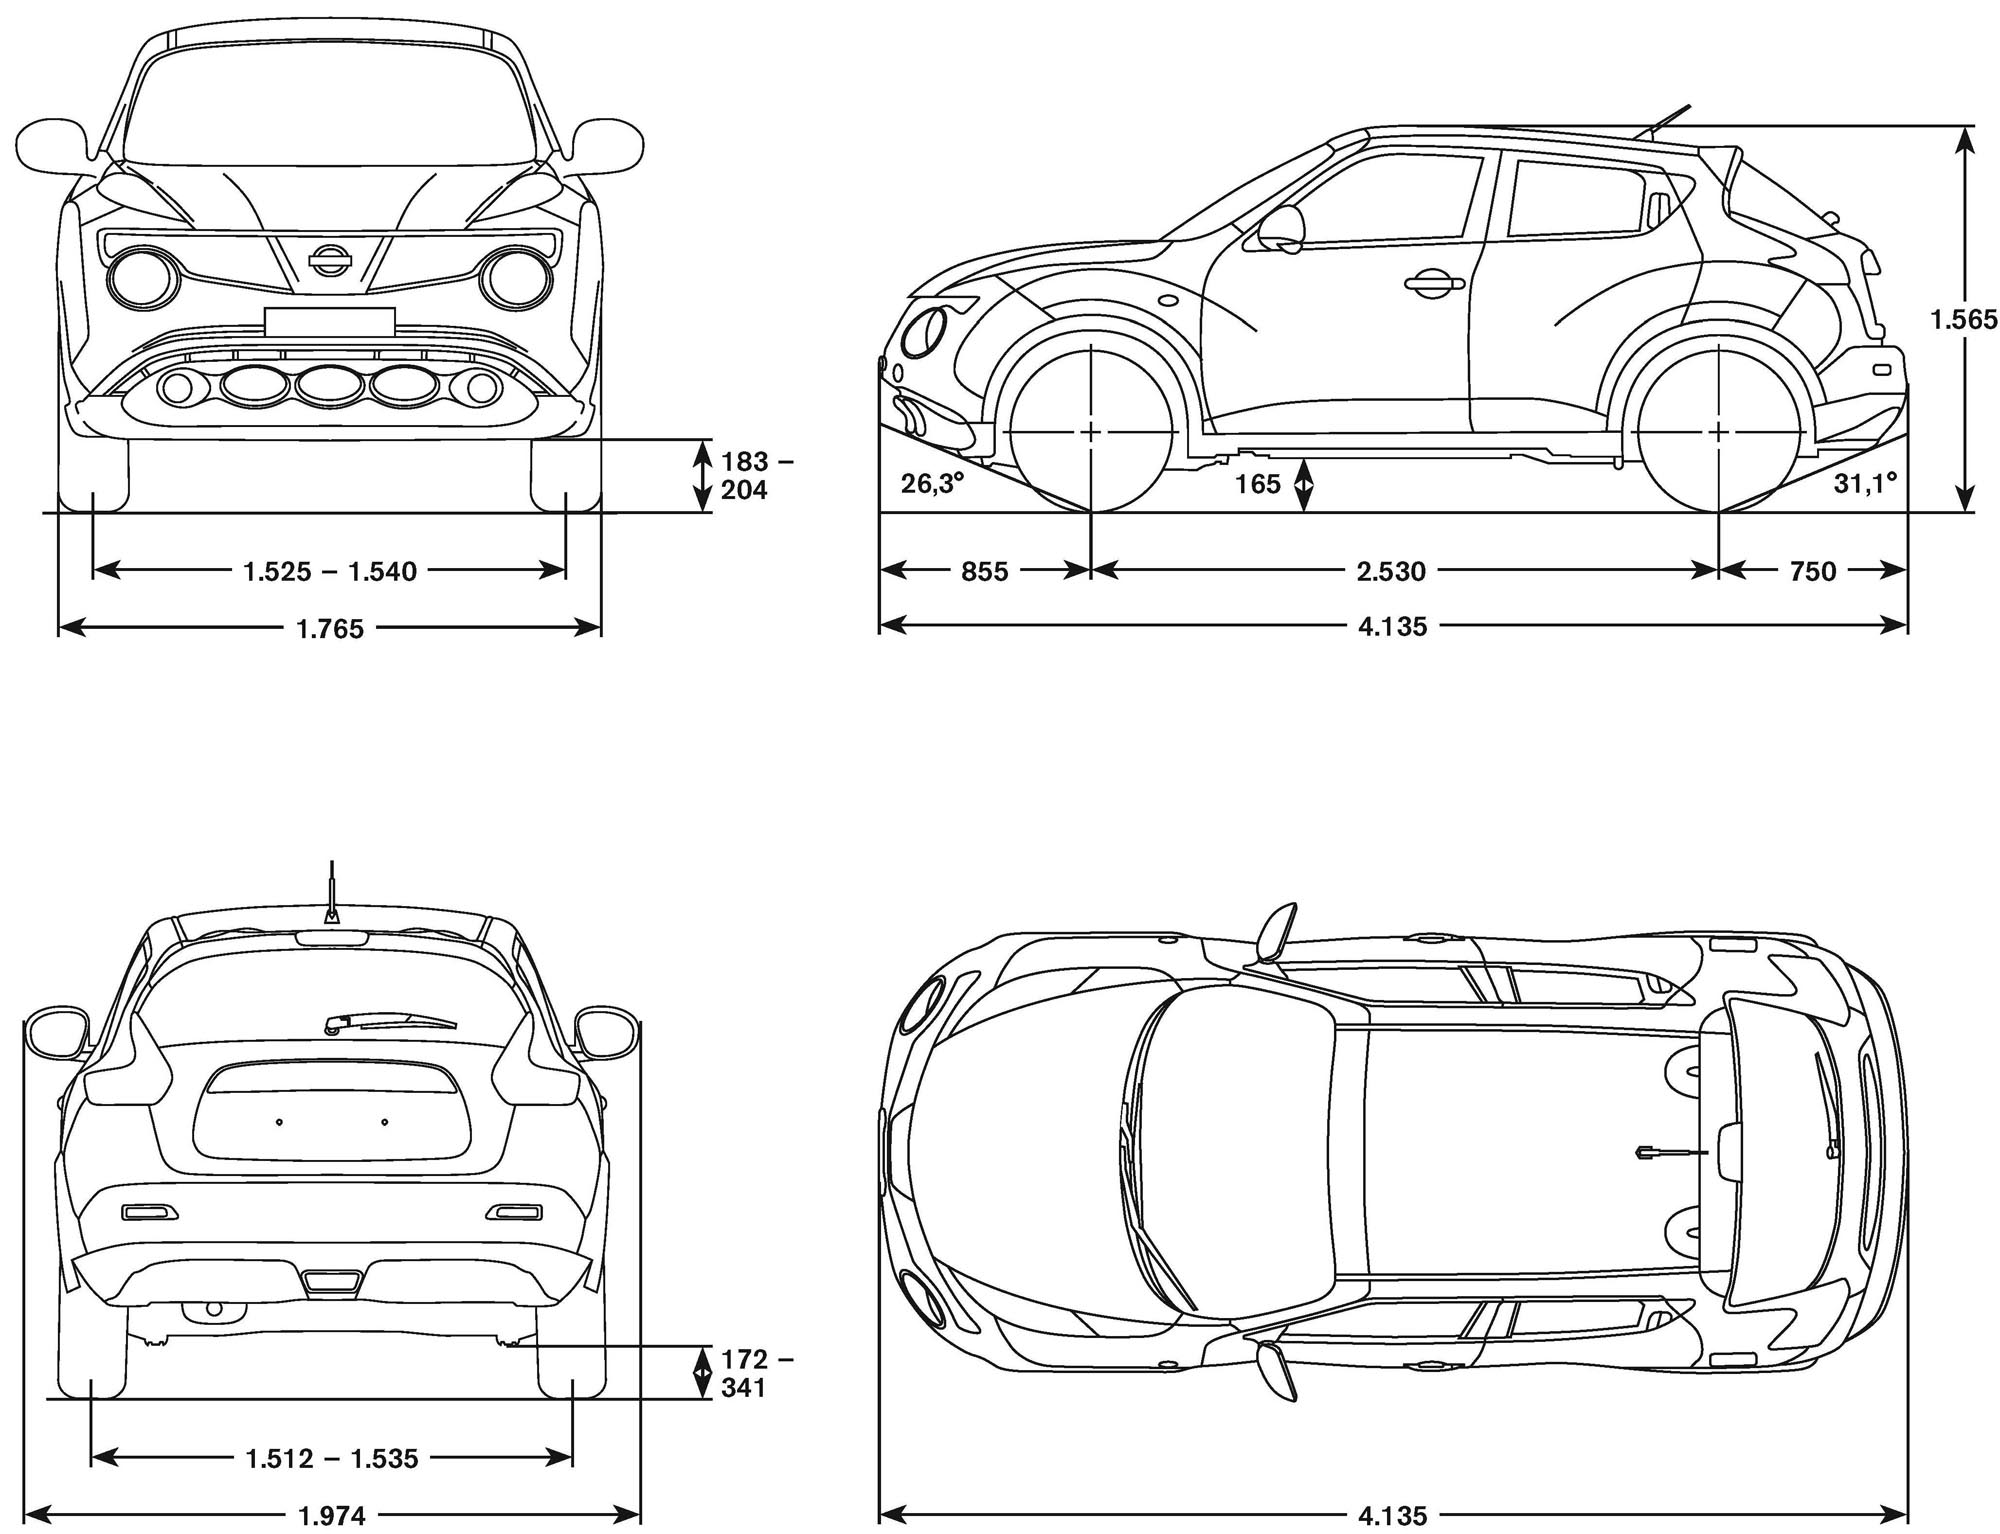 Nissan juke 2010 blueprint download free blueprint for 3d modeling nissan juke blueprint malvernweather Choice Image